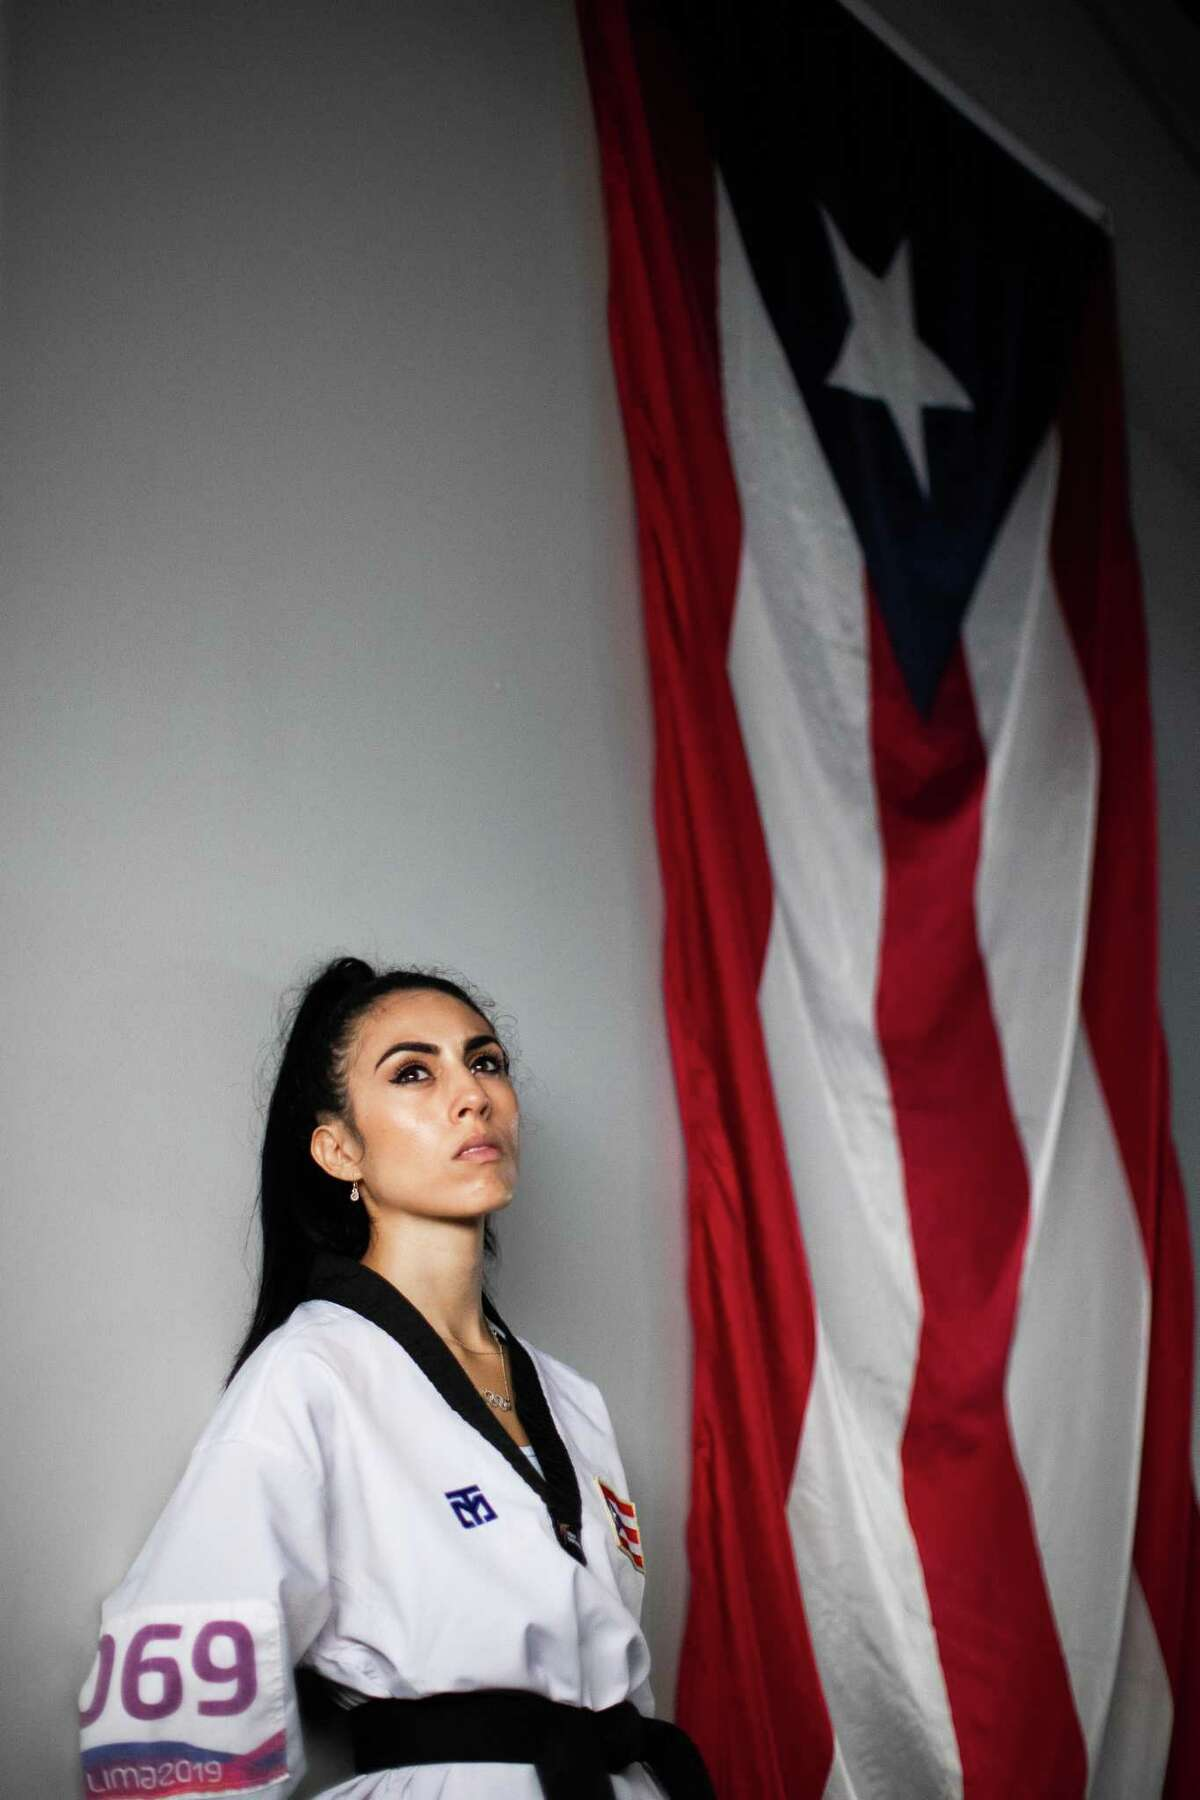 Olympic taekwondo athlete Victoria Stambaugh, 28, at the Performa gym, Thursday, June 10, 2021, in San Juan. Stambaugh, a native Houstonian will be representing Puerto Rico in the 2020 Summer Olympics in Tokyo.